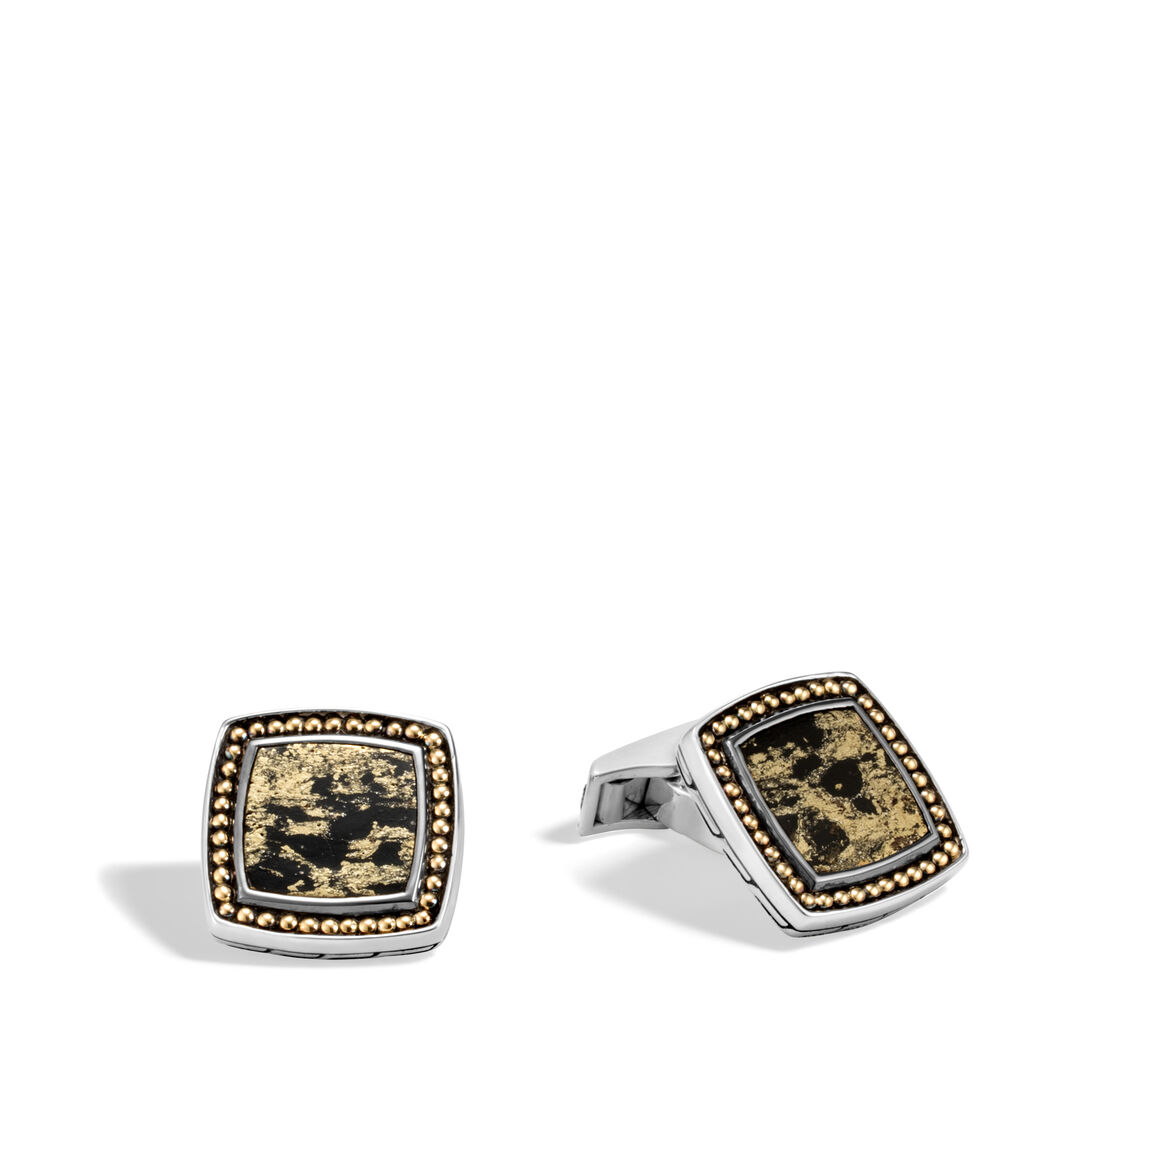 Chain Jawan Cufflinks in Silver and 18K Gold with Gemstone